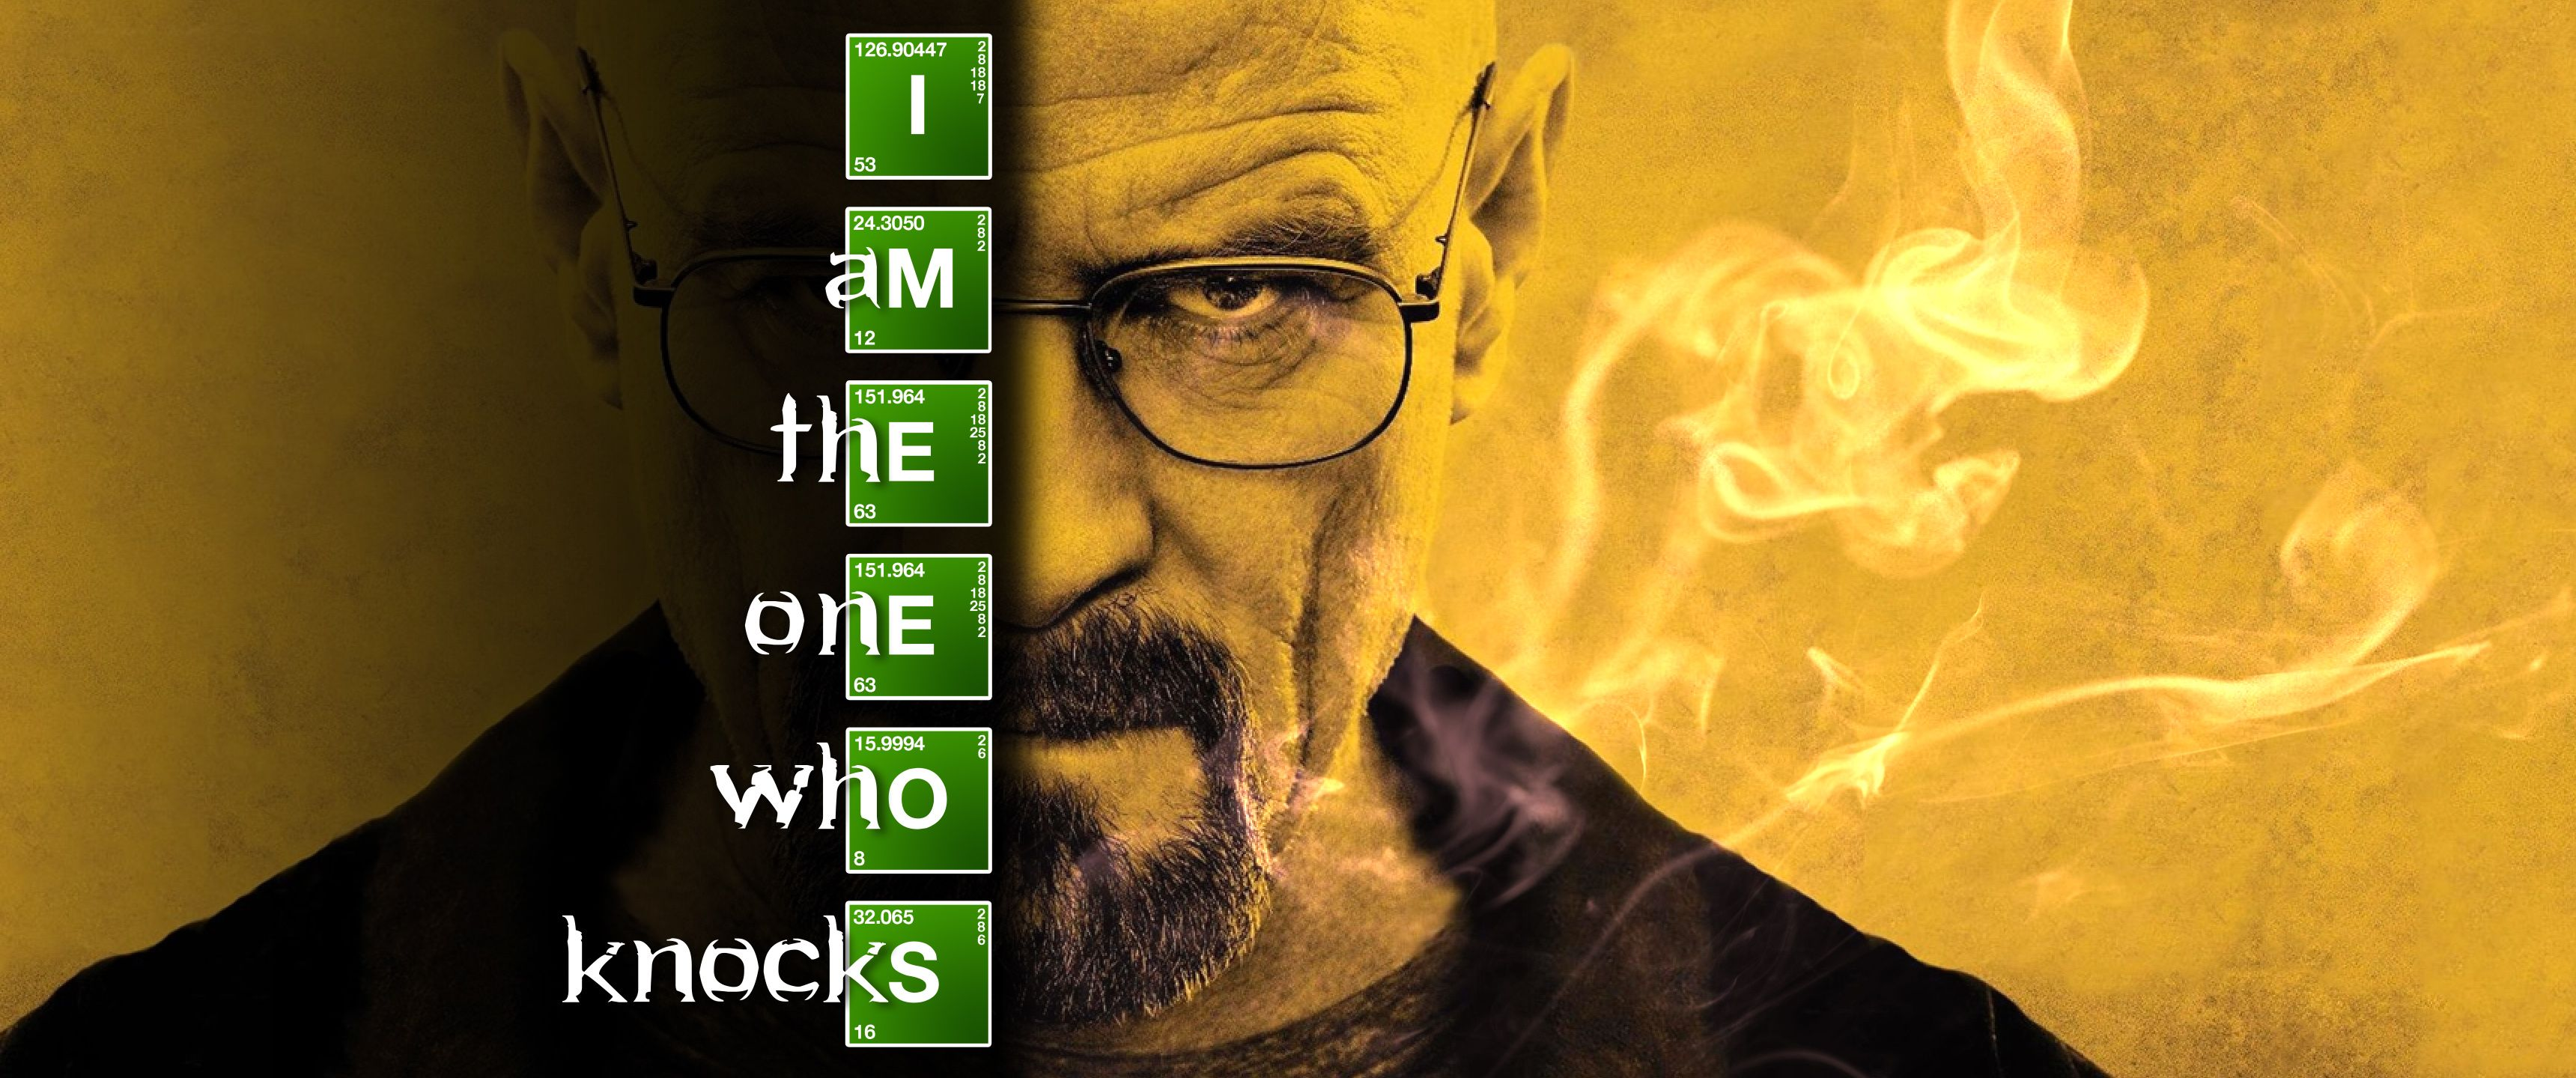 Breaking Bad Wallpapers Photo Is 4K Wallpaper (With images